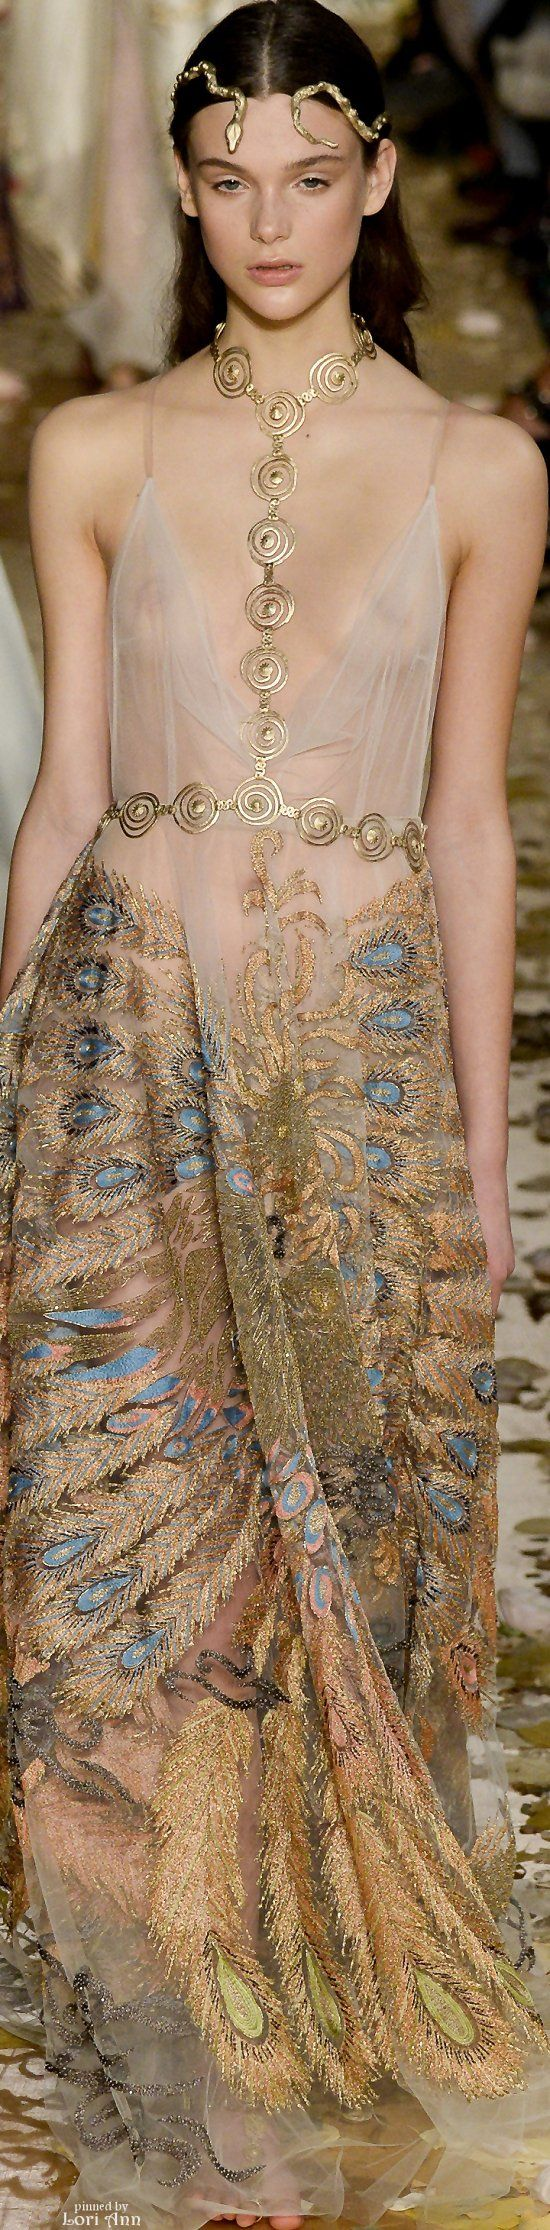 fabric and accessories rely on each other for contrast, weight and balance. Valentino Couture Spring 2016